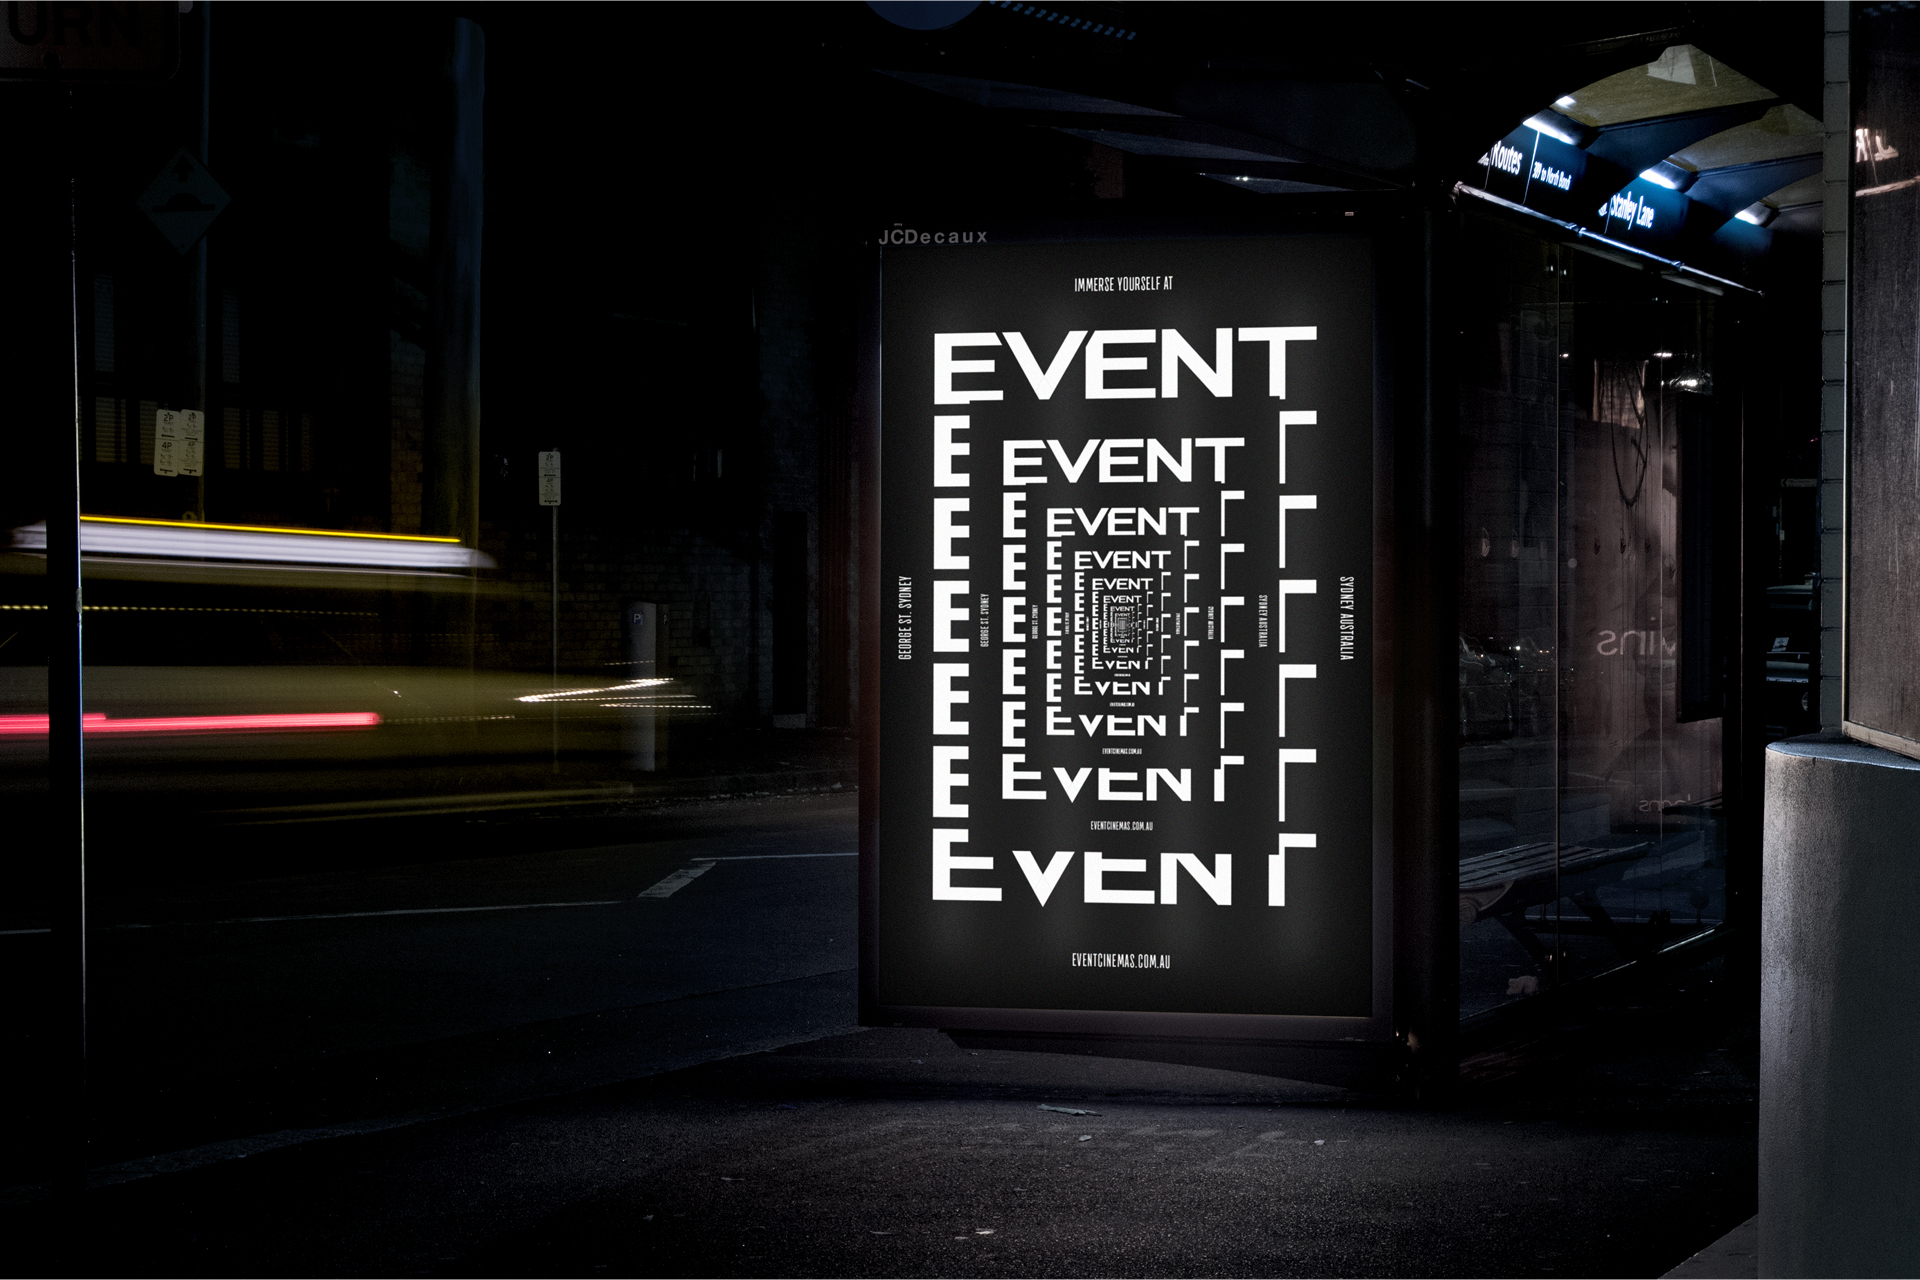 EVENT Cinemas launches new brand strategy and campaign as part of broader remit via Landor